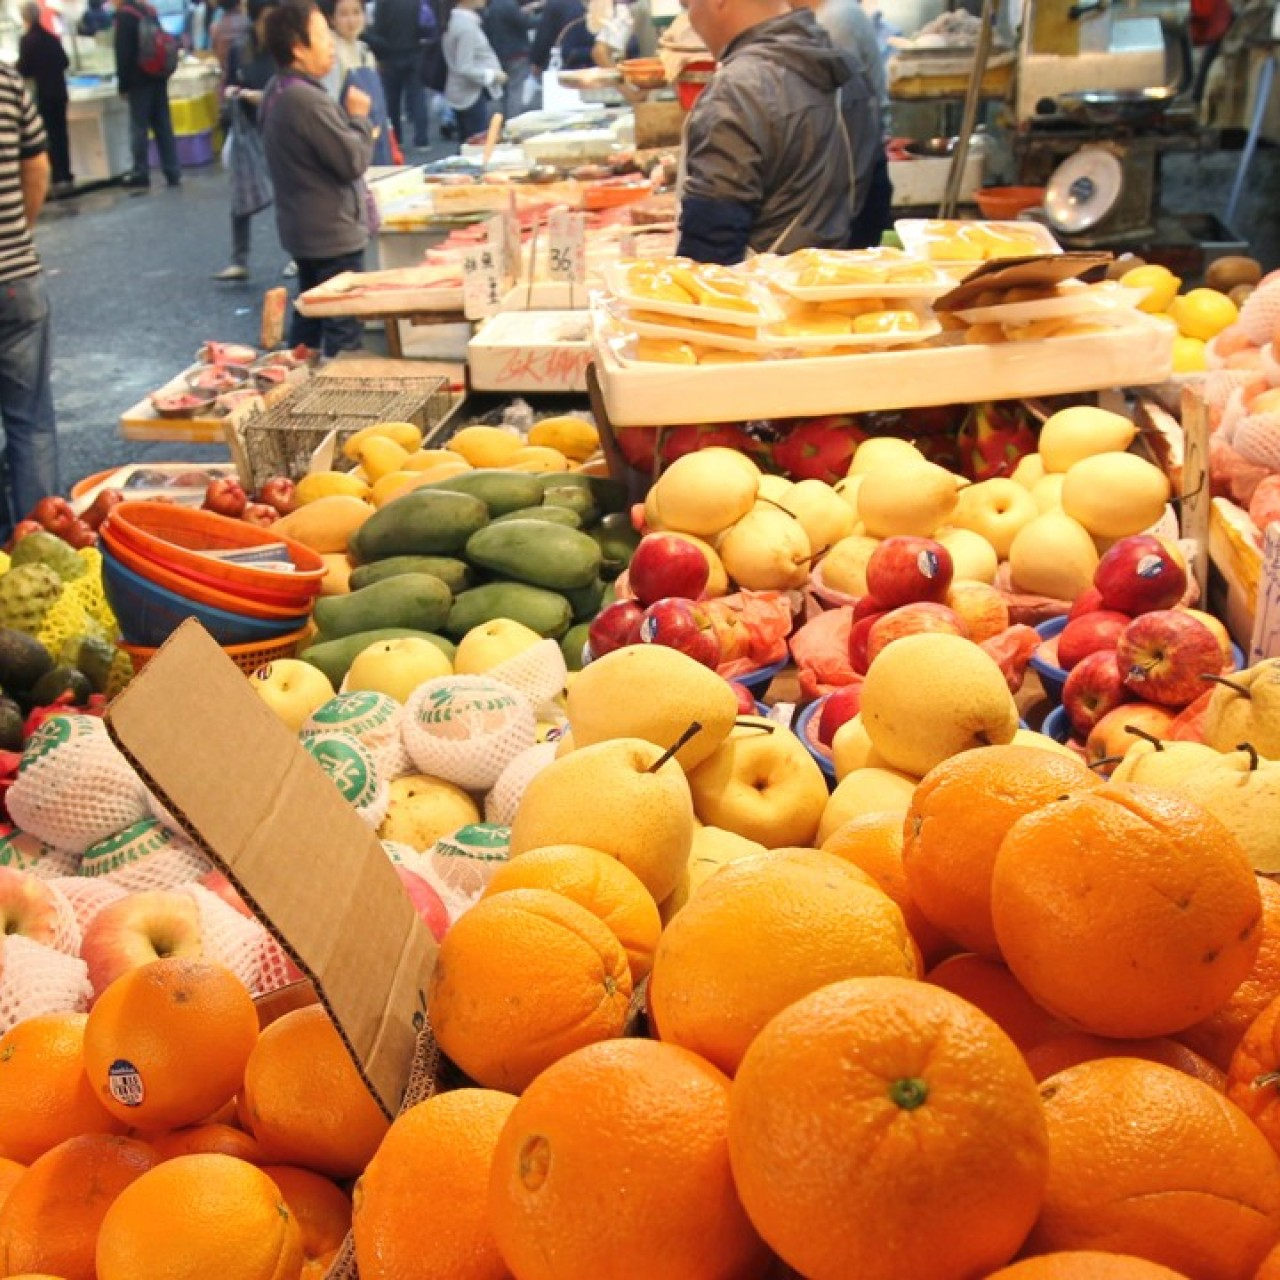 Hong Kong's food safety checks for imported fruits and